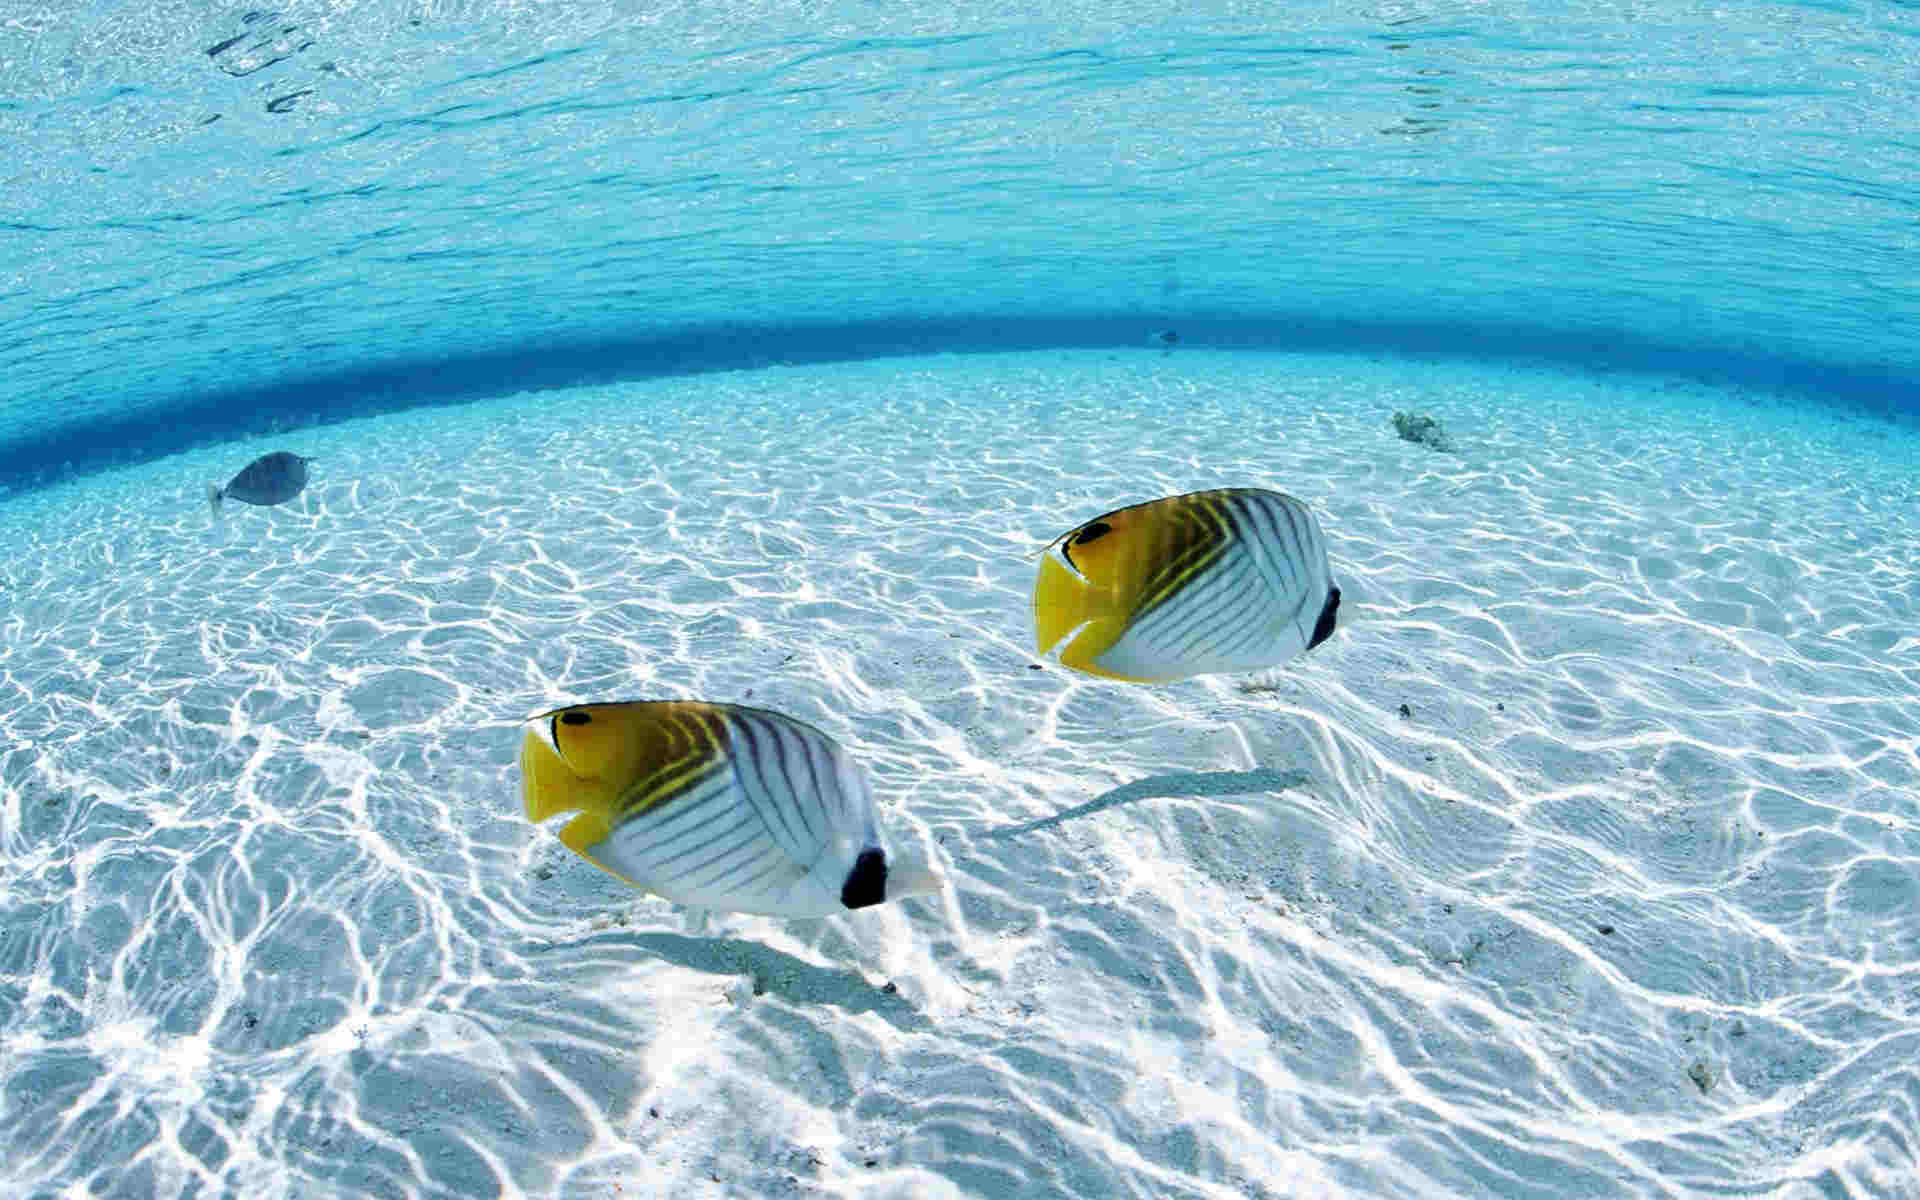 Fishes In Water Wallpaper